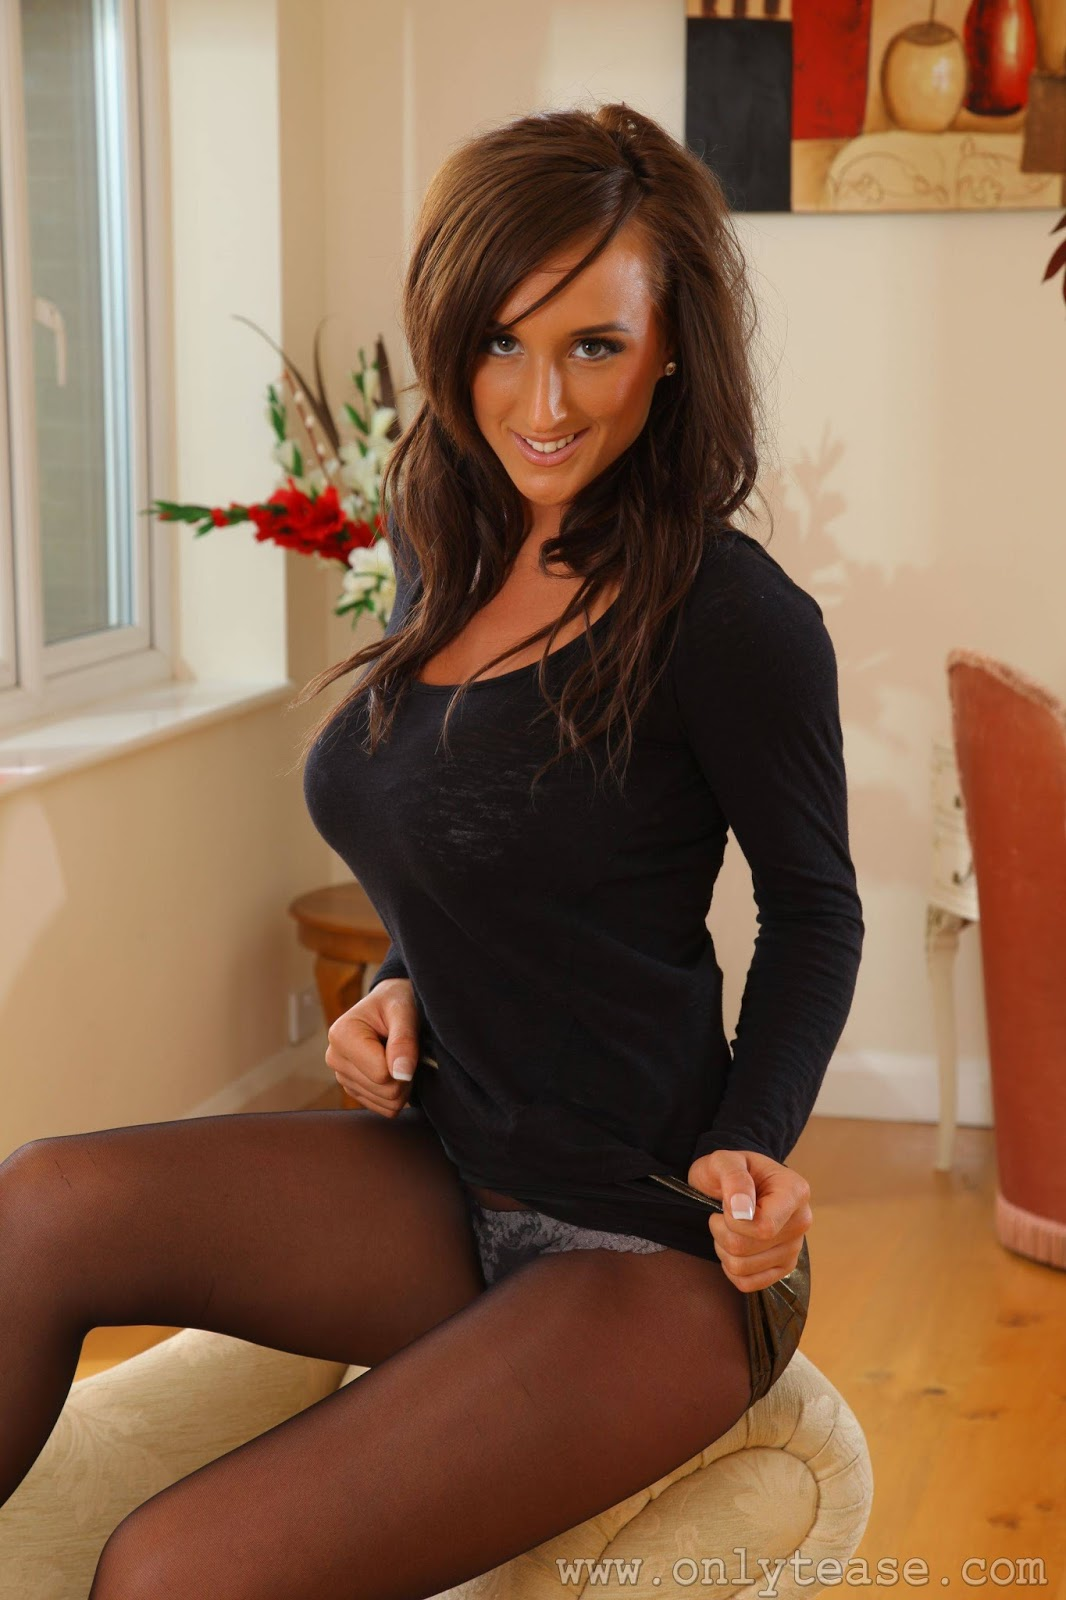 My Top Glamour Models Stacey Poole - Only Tease - Teasing In A Gold Mini Skirt  Black Pantyhose-6454